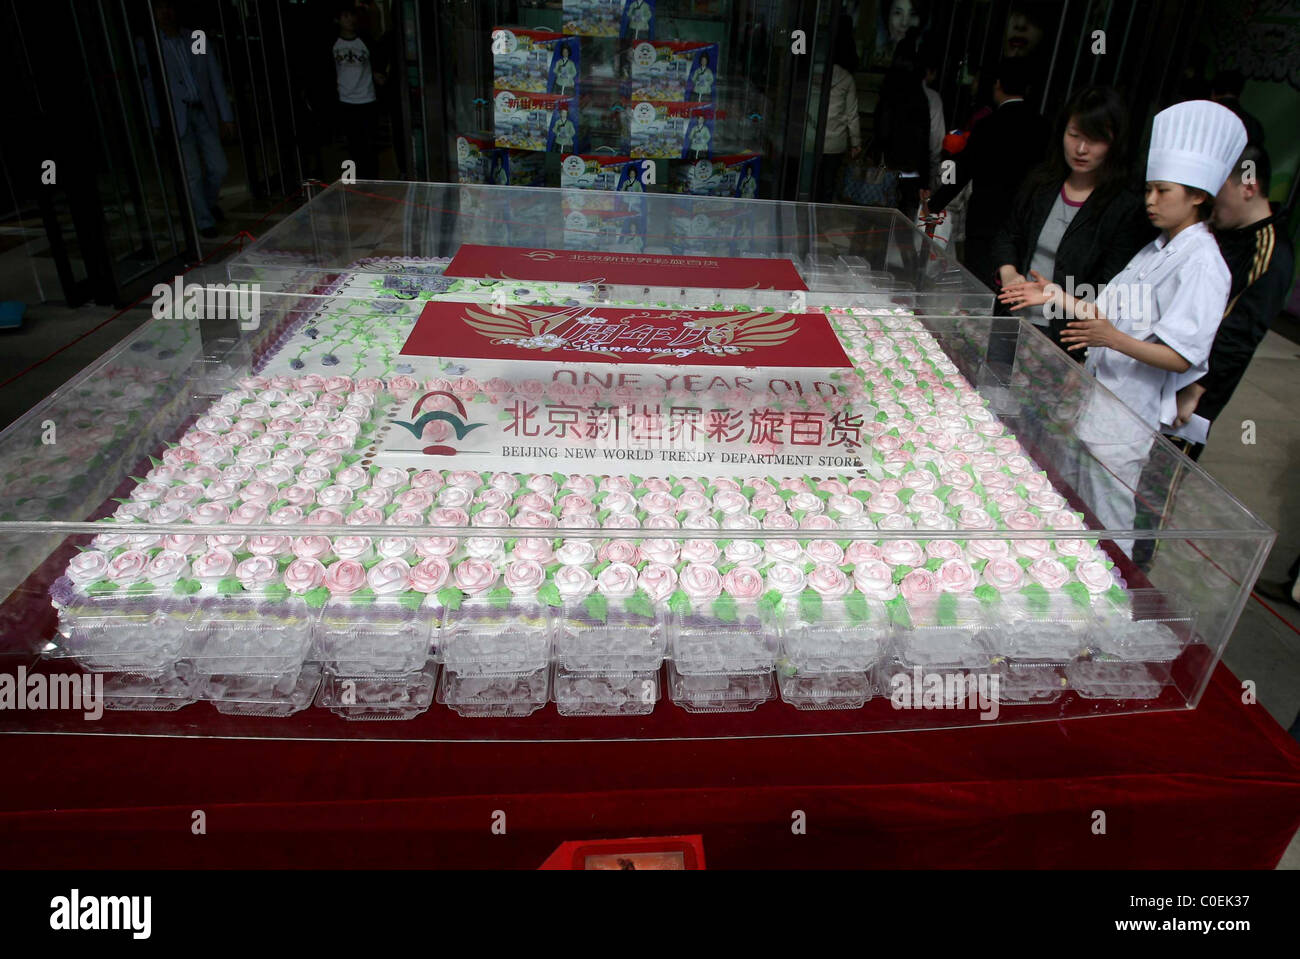 Astonishing Cake Fills Department Store A Gigantic Birthday Cake Displayed On Funny Birthday Cards Online Fluifree Goldxyz